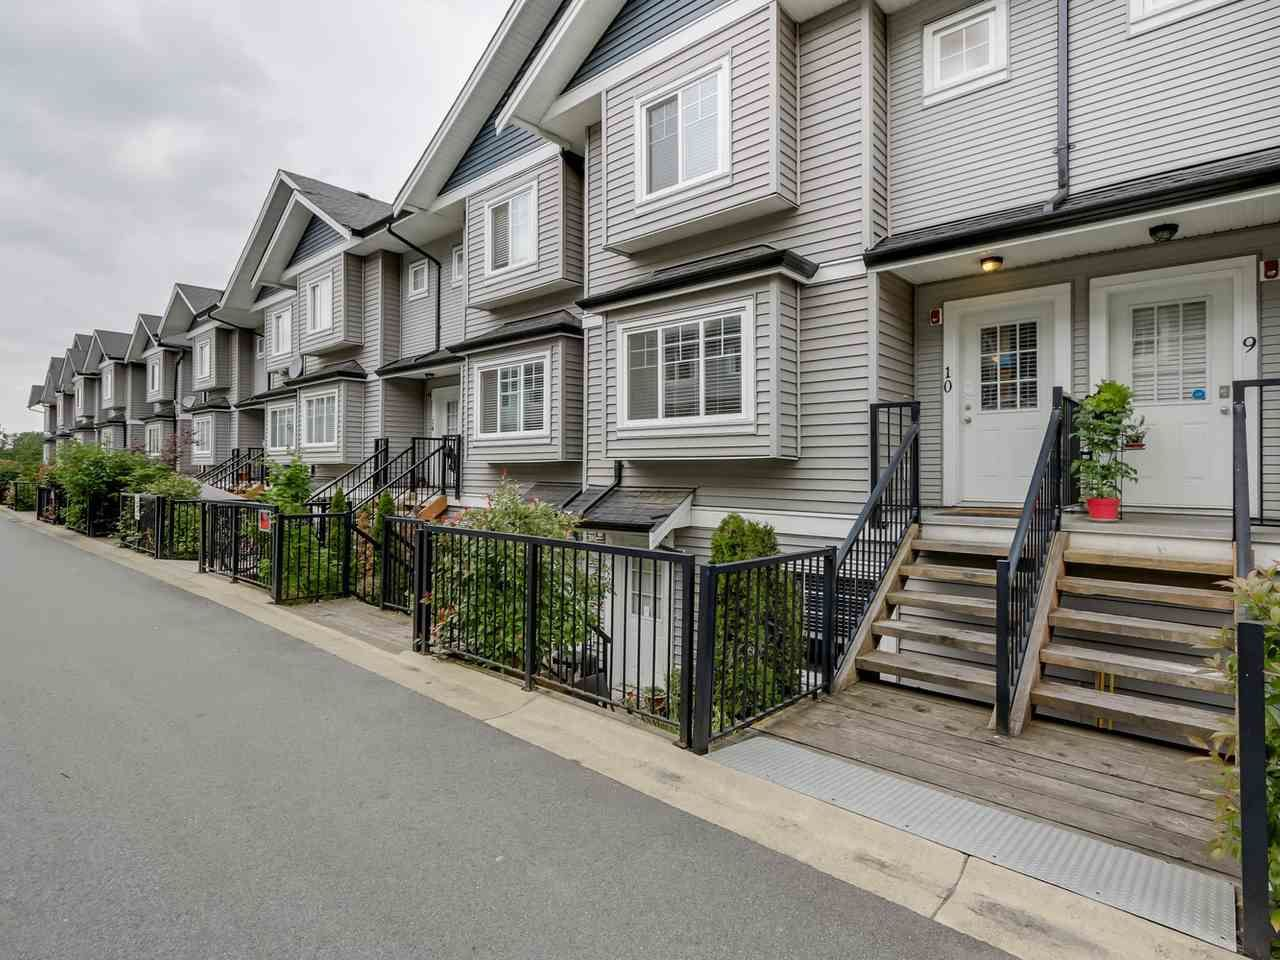 """Photo 2: Photos: 10 11255 132 Street in Surrey: Bridgeview Townhouse for sale in """"FRASERVIEW TERRACE"""" (North Surrey)  : MLS®# R2086692"""